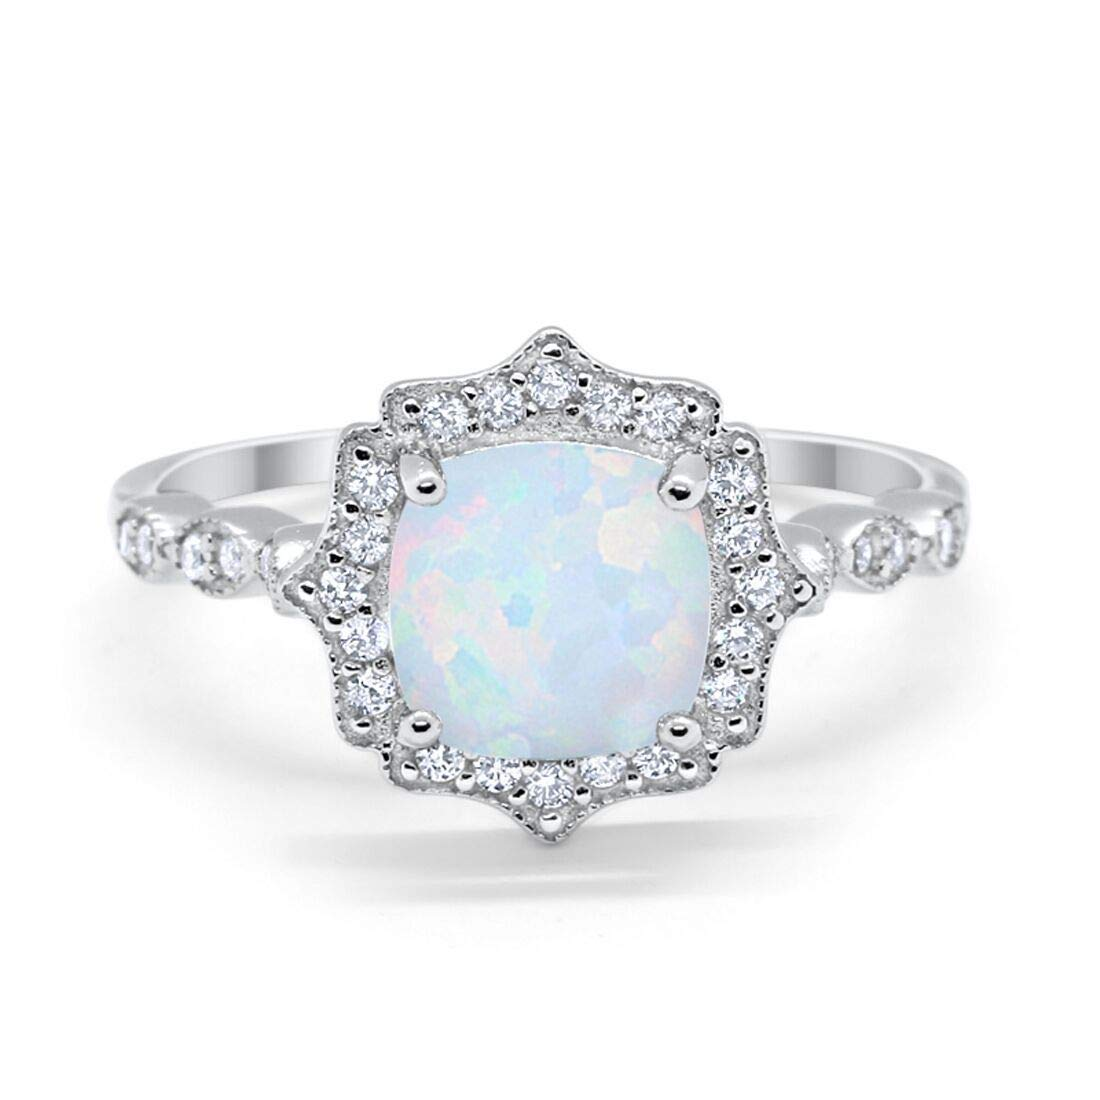 Blue Apple Co. Halo Art Deco Engagement Ring Cushion Simulated Morganite Round Cubic Zirconia Rose Tone 925 Sterling Silver Choose Color